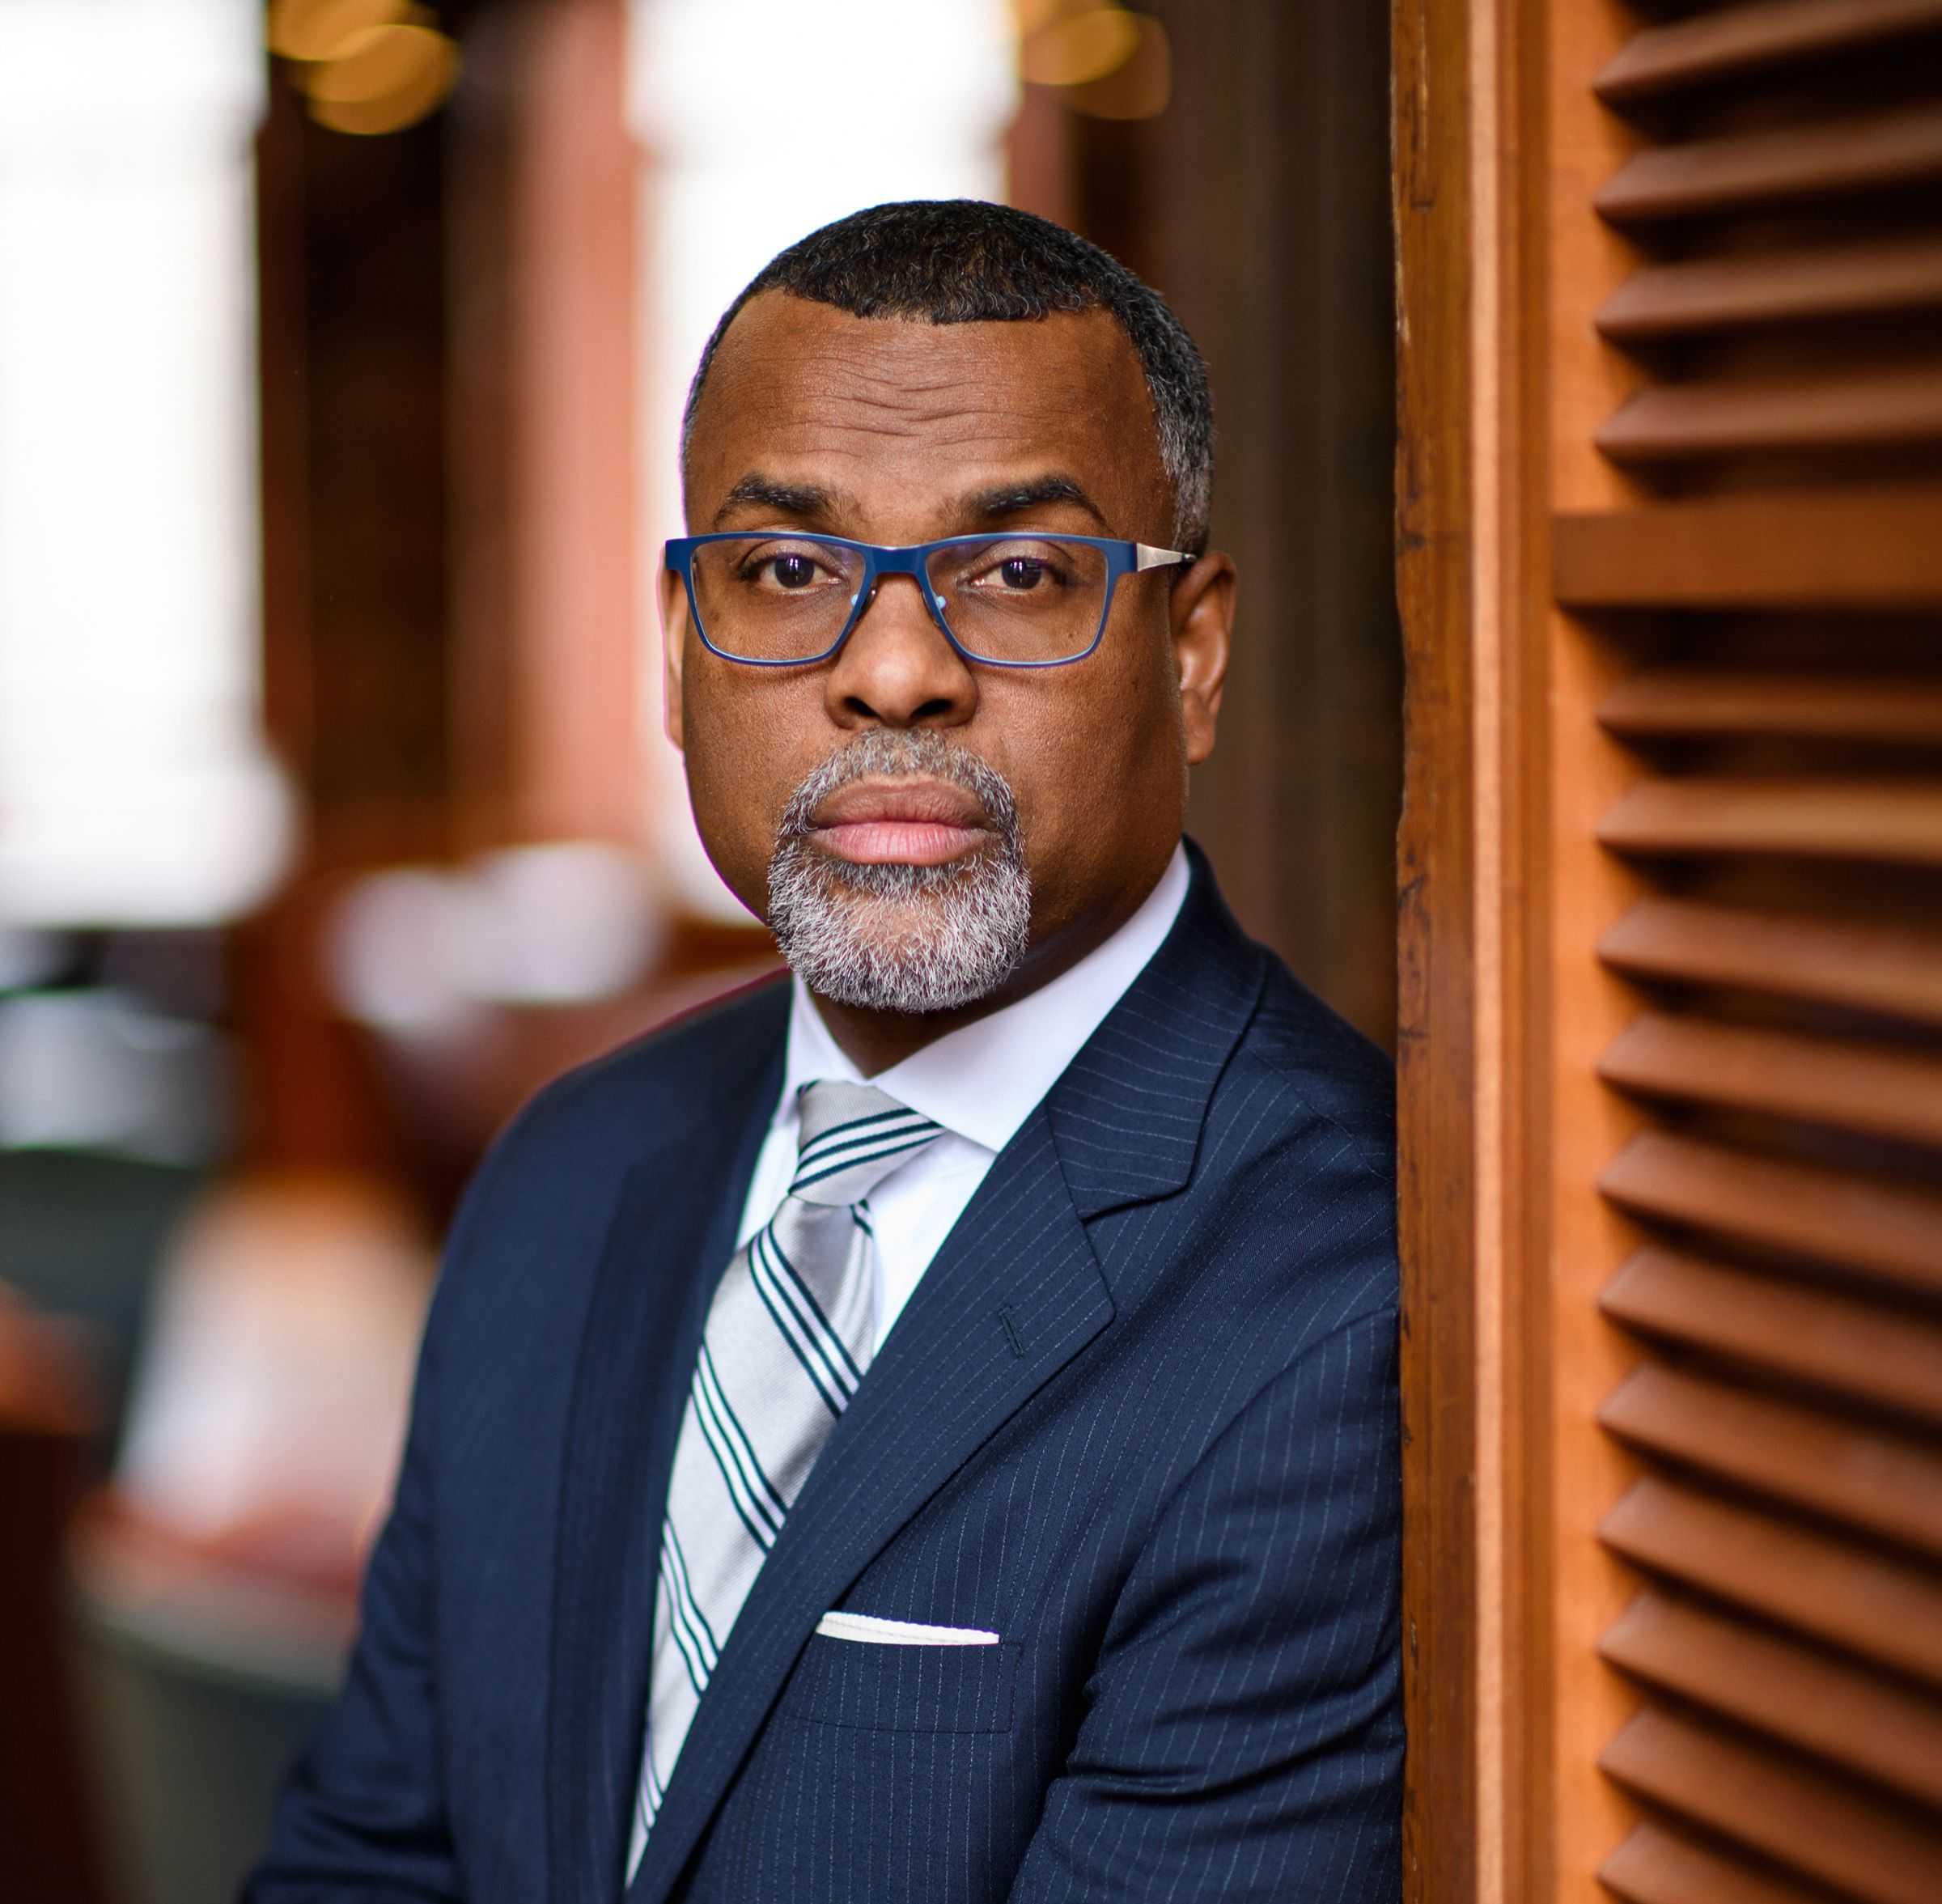 Dr. Glaude wearing a navy suit and leaning against a wall.